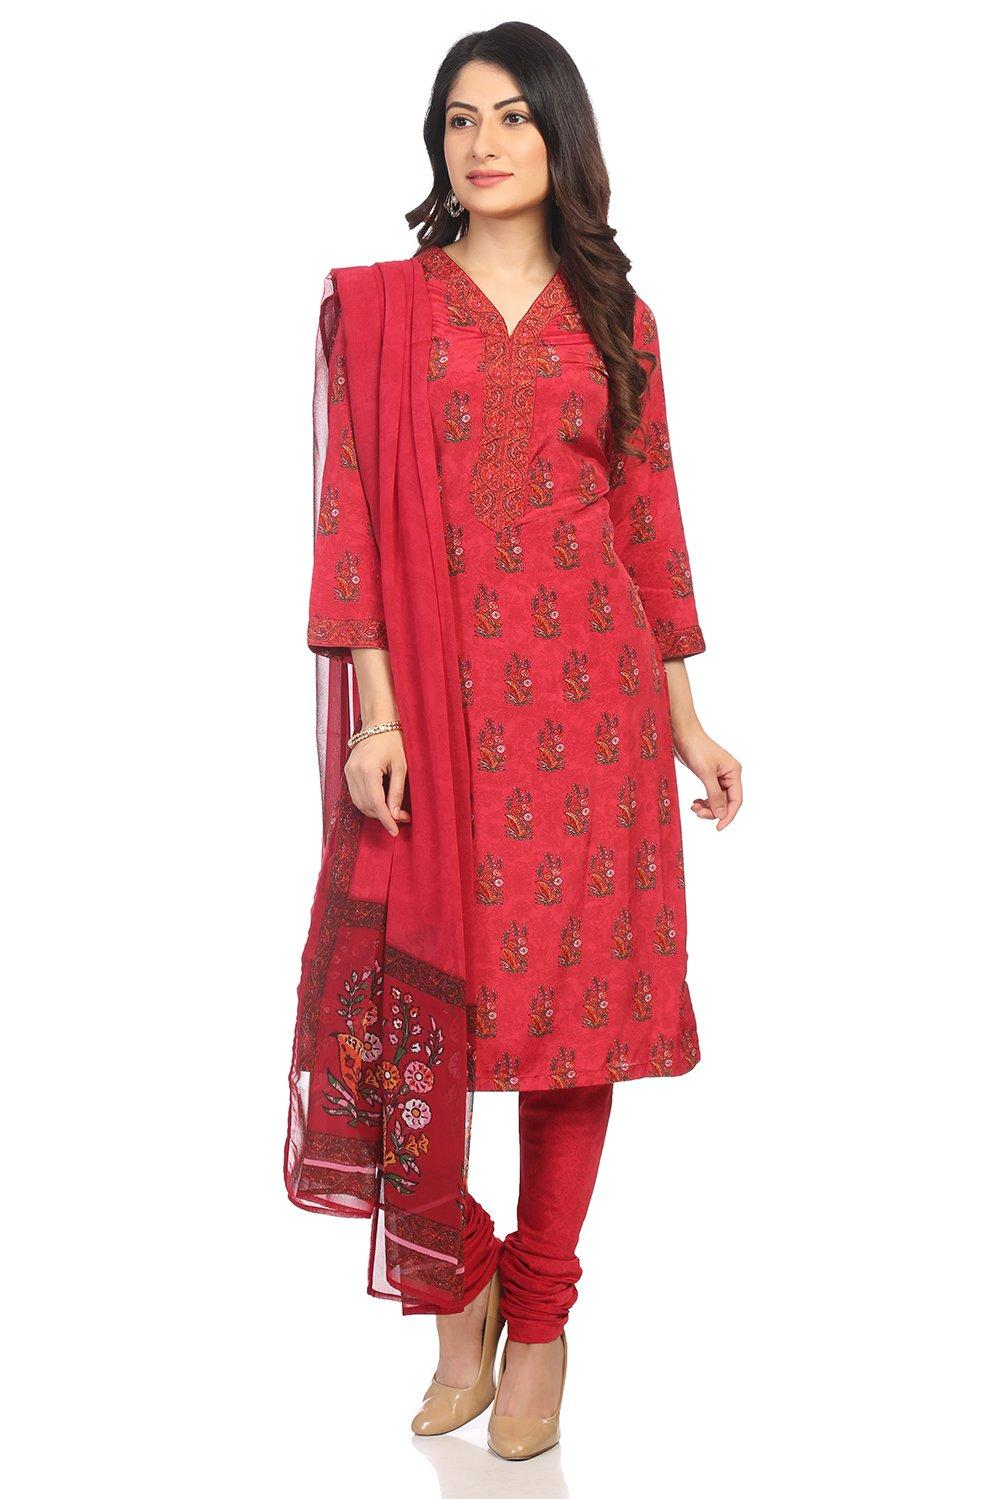 Red Art Silk Straight Suit Set - SKD5771AW18RED